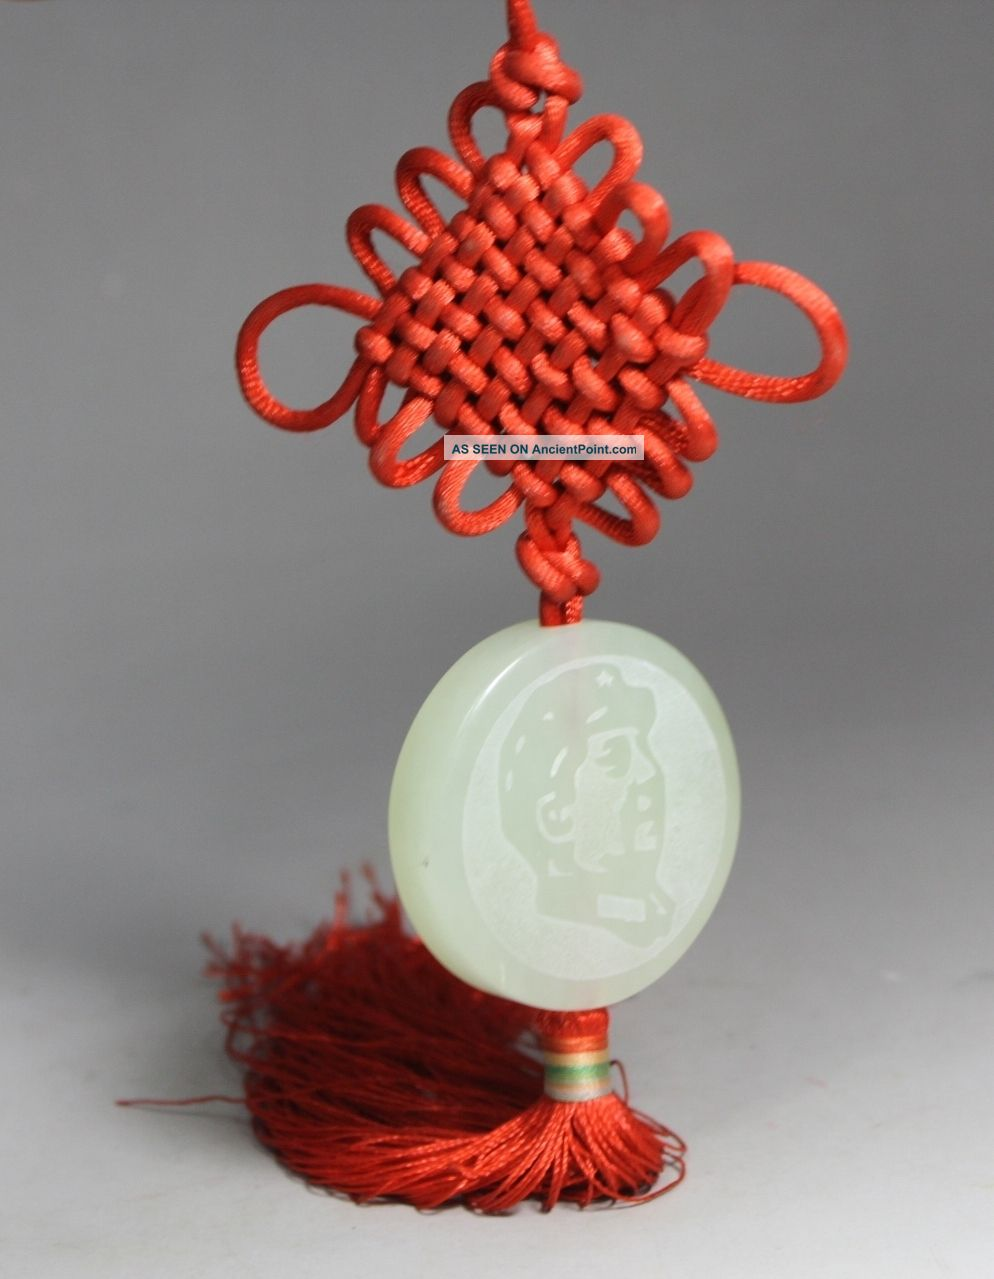 Chinese Arts Jade/ String Handwork Chinese Knot Chairman Mao Pendant Decoration Uncategorized photo